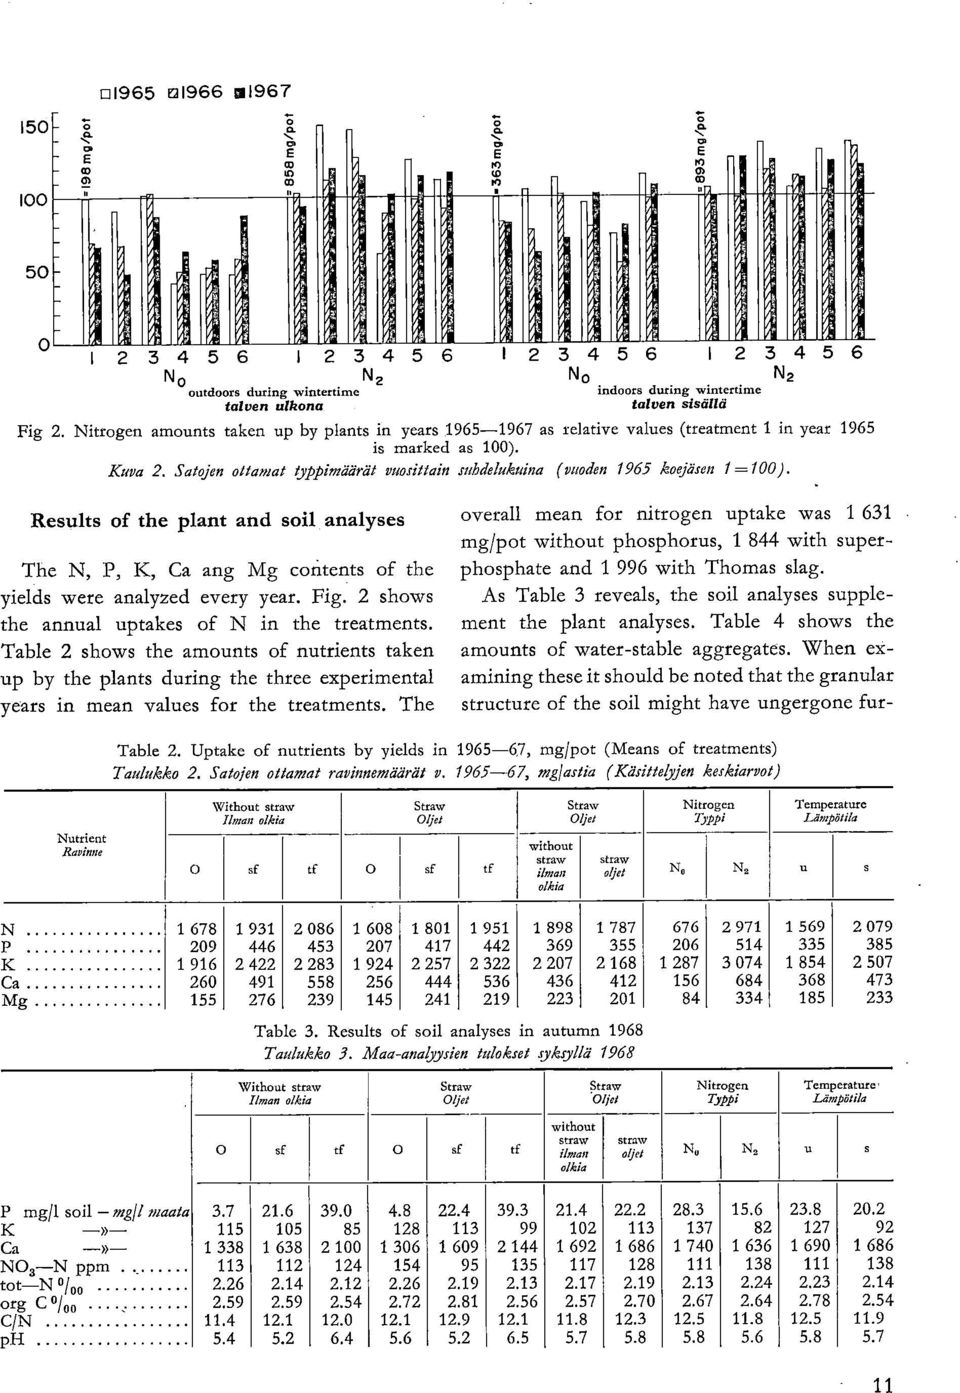 Nitrogen amounts taken up by plants in years 1965-1967 as relative values (treatment 1 in year 1965 is marked as 100). Kuva 2.